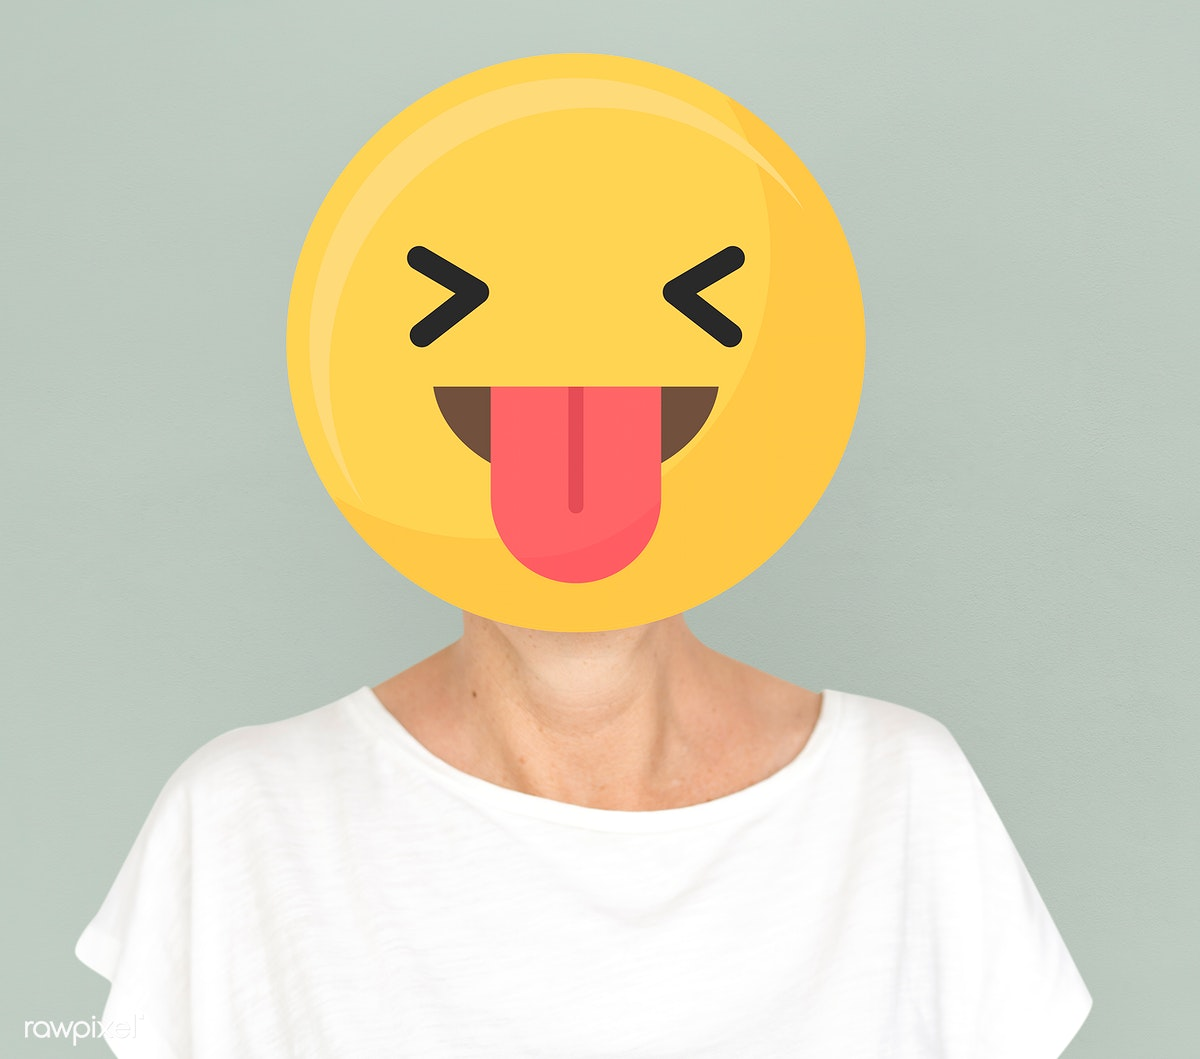 Download premium image of Funny face emoji portrait on a woman 586678